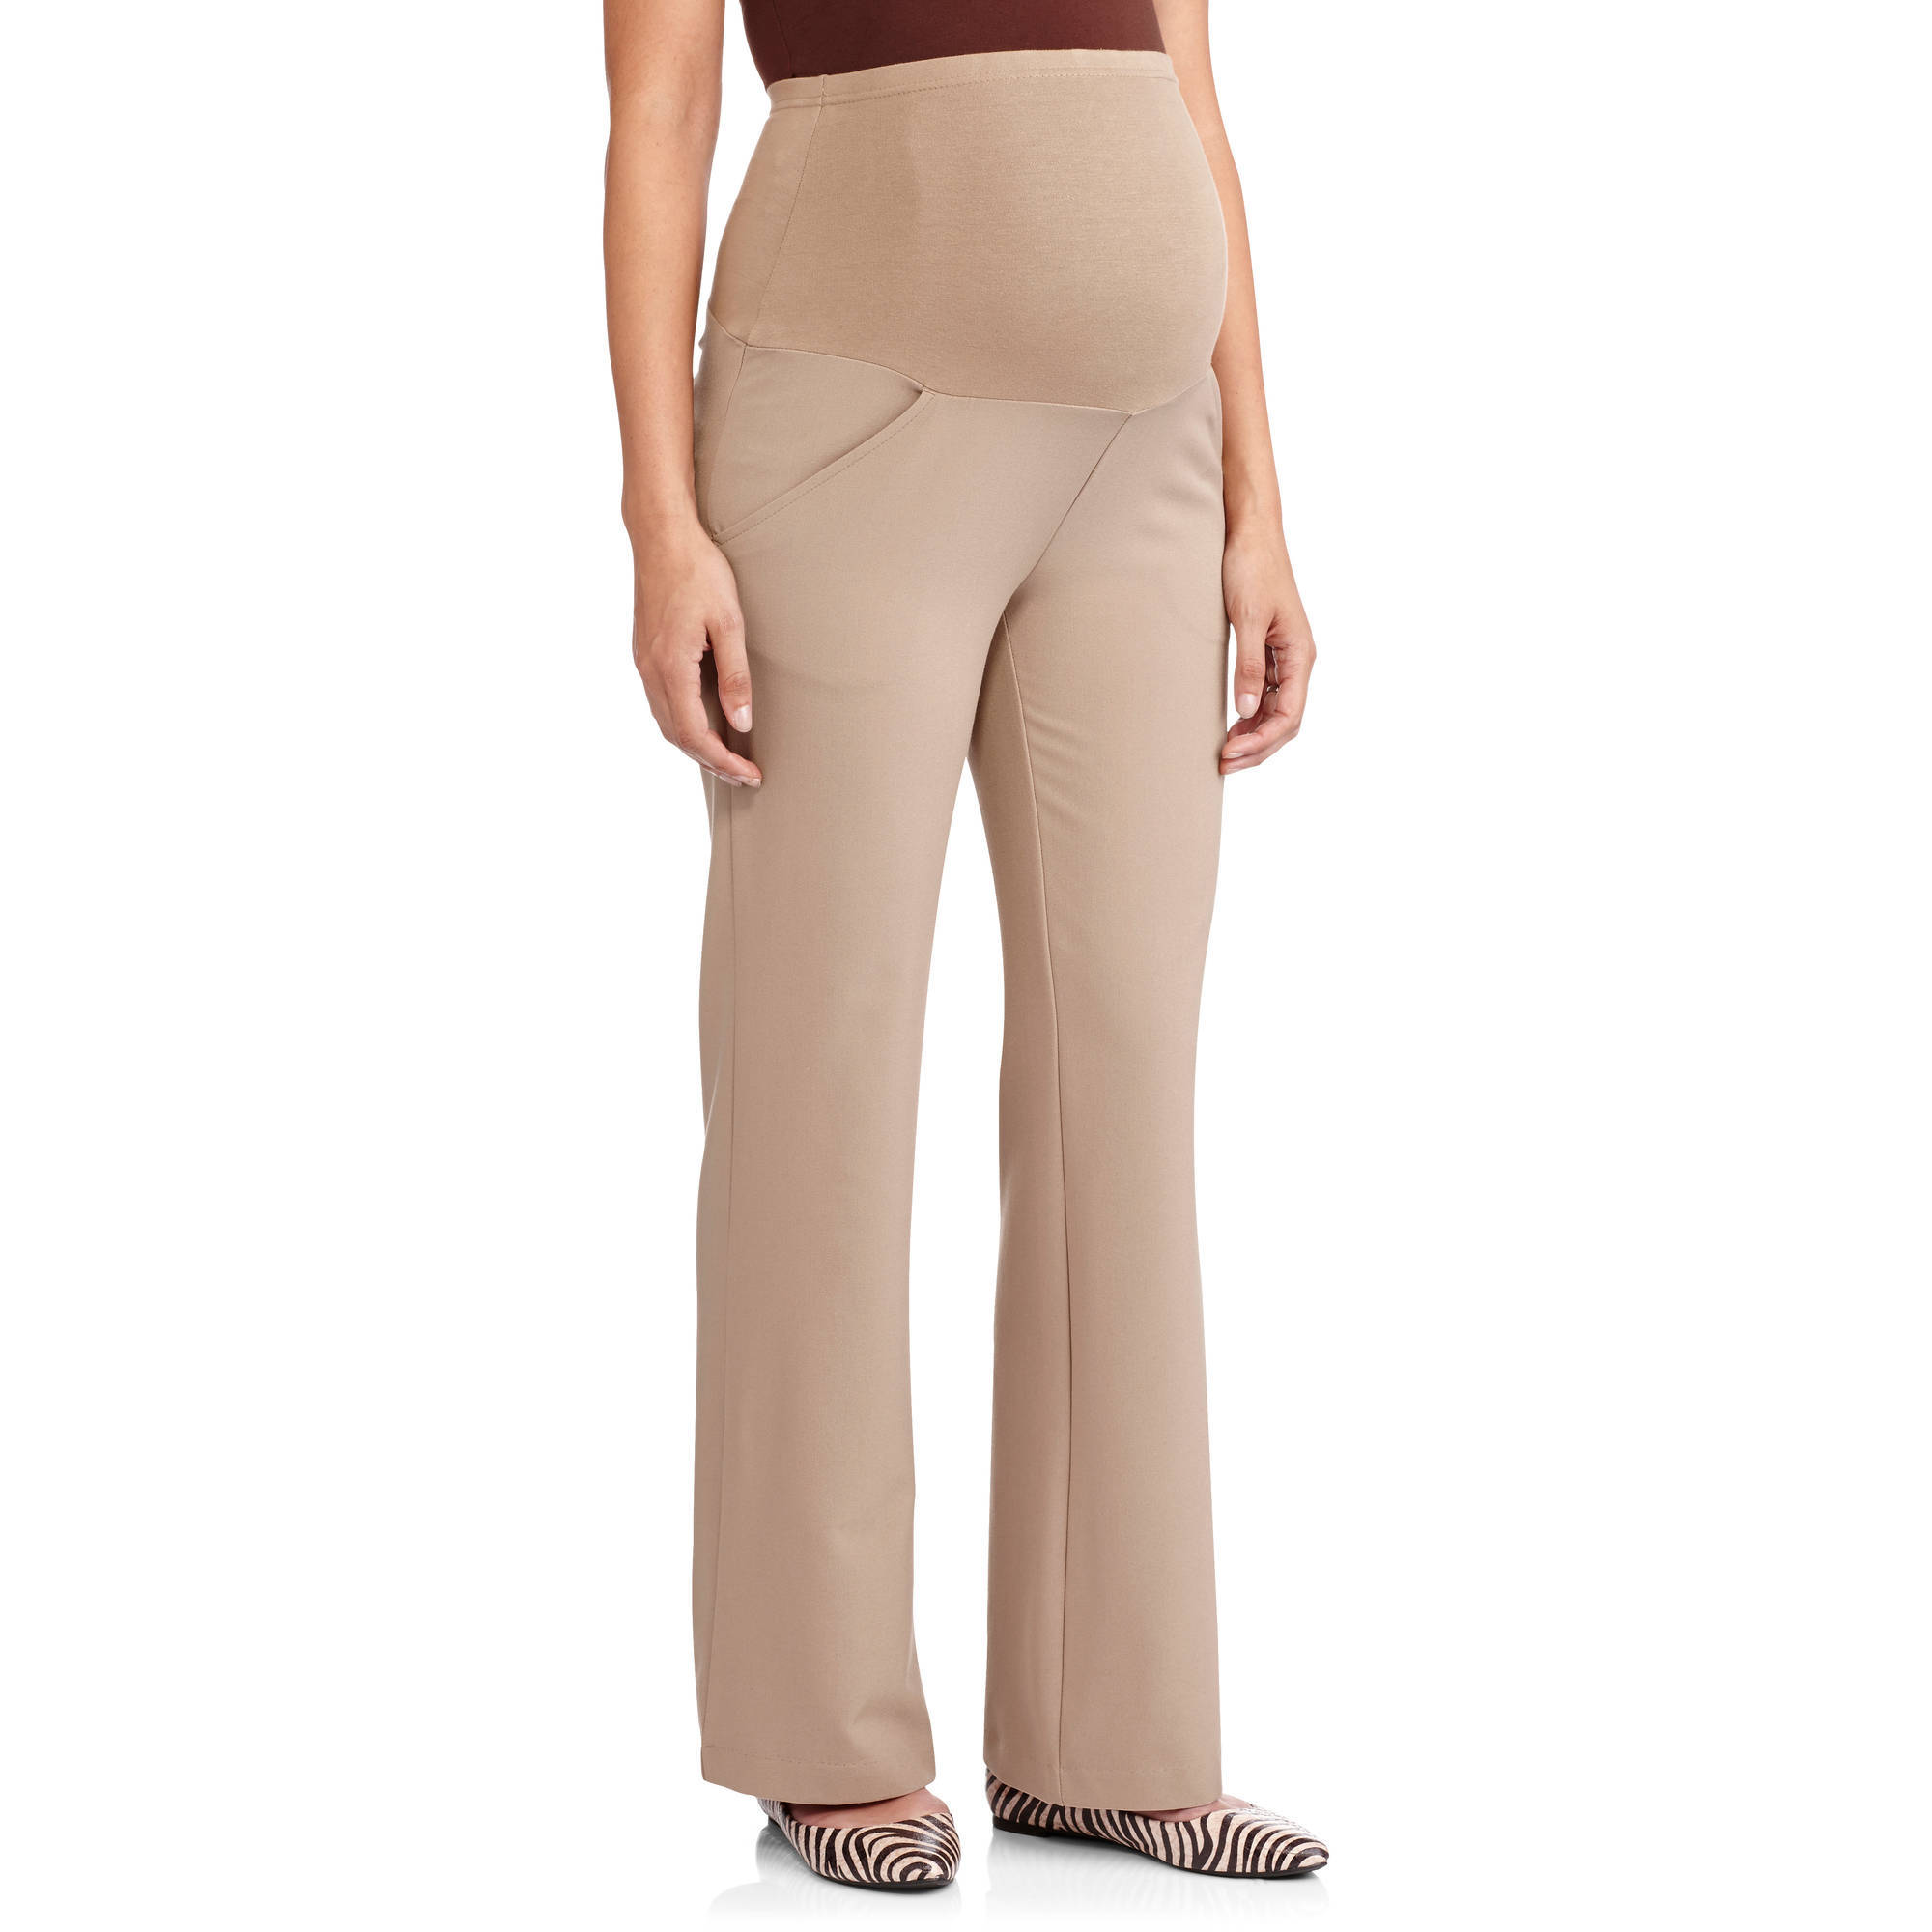 Full-Panel Wide Leg Career Maternity Pants